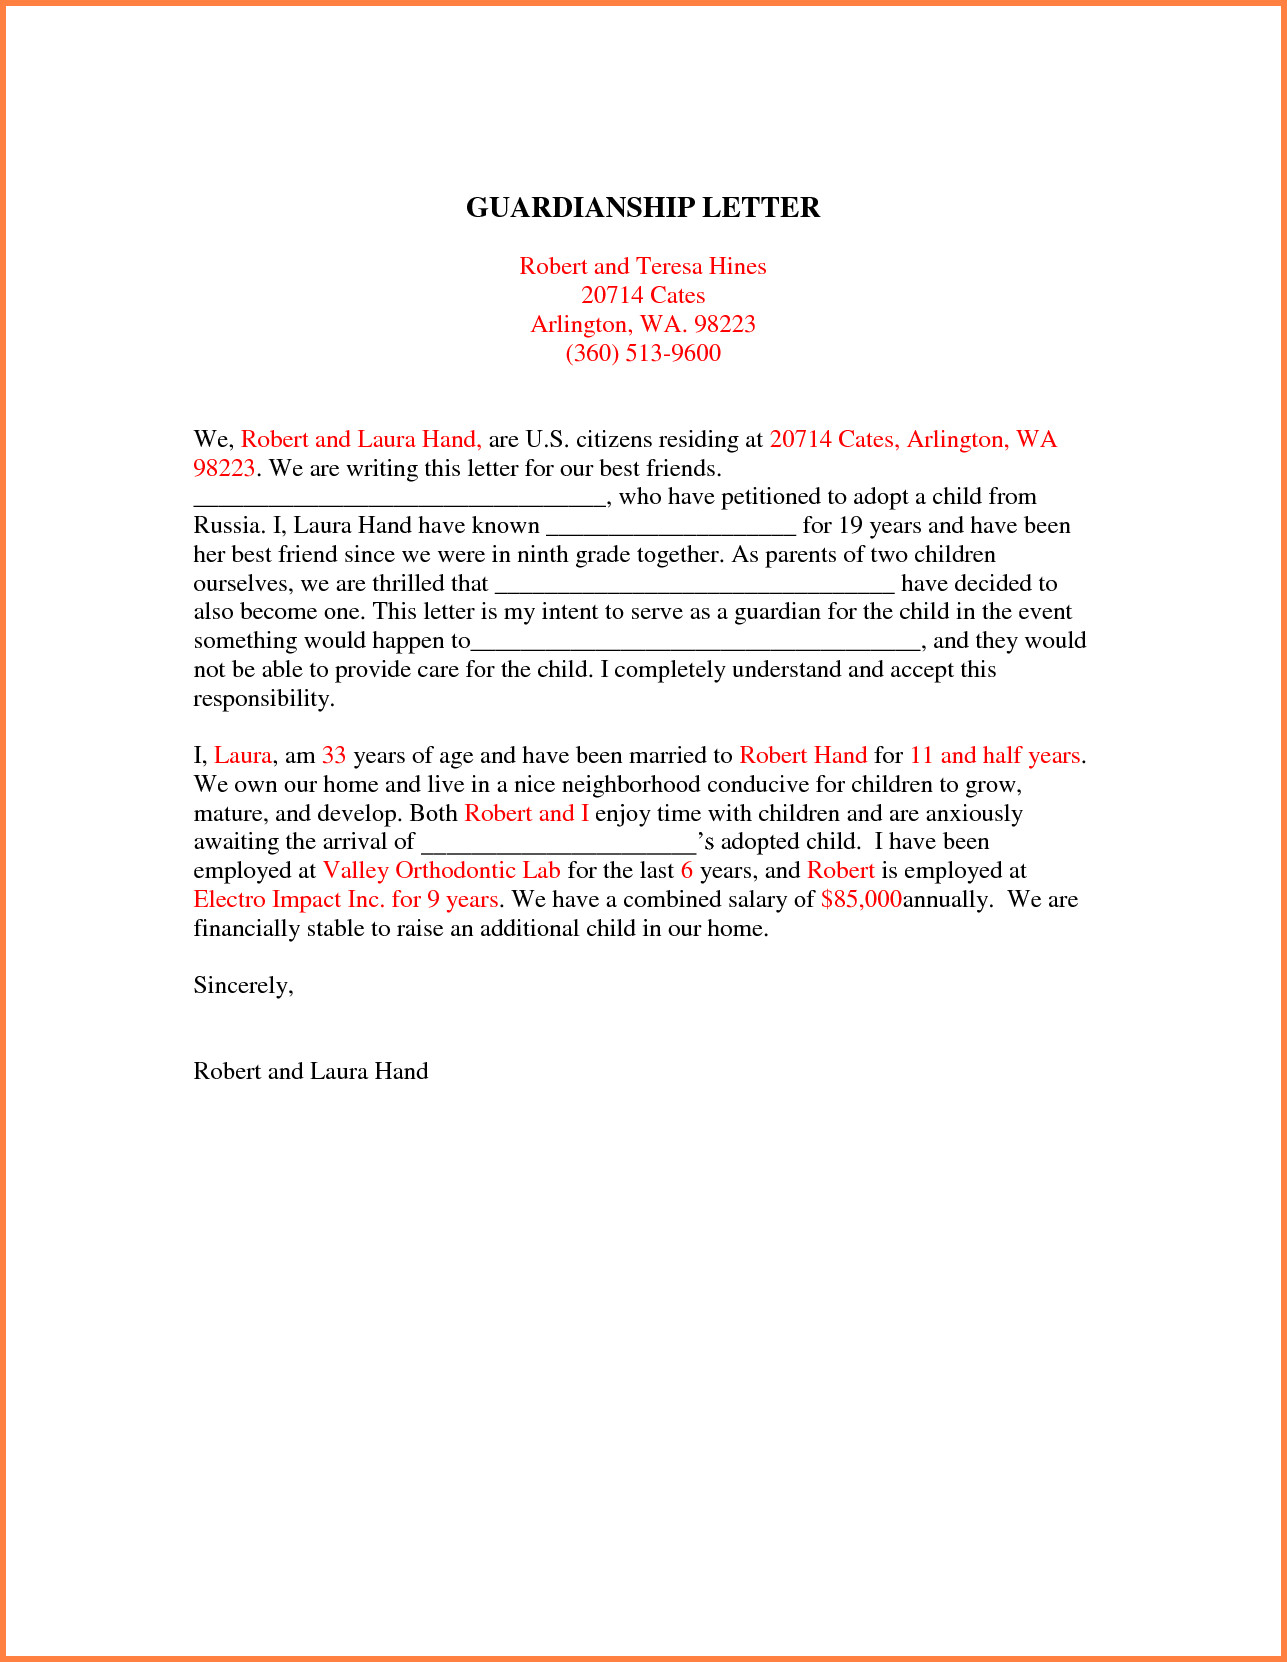 Template for Temporary Guardianship Letter - Sample Guardianship Letter Inspirational Nice Temporary Guardianship